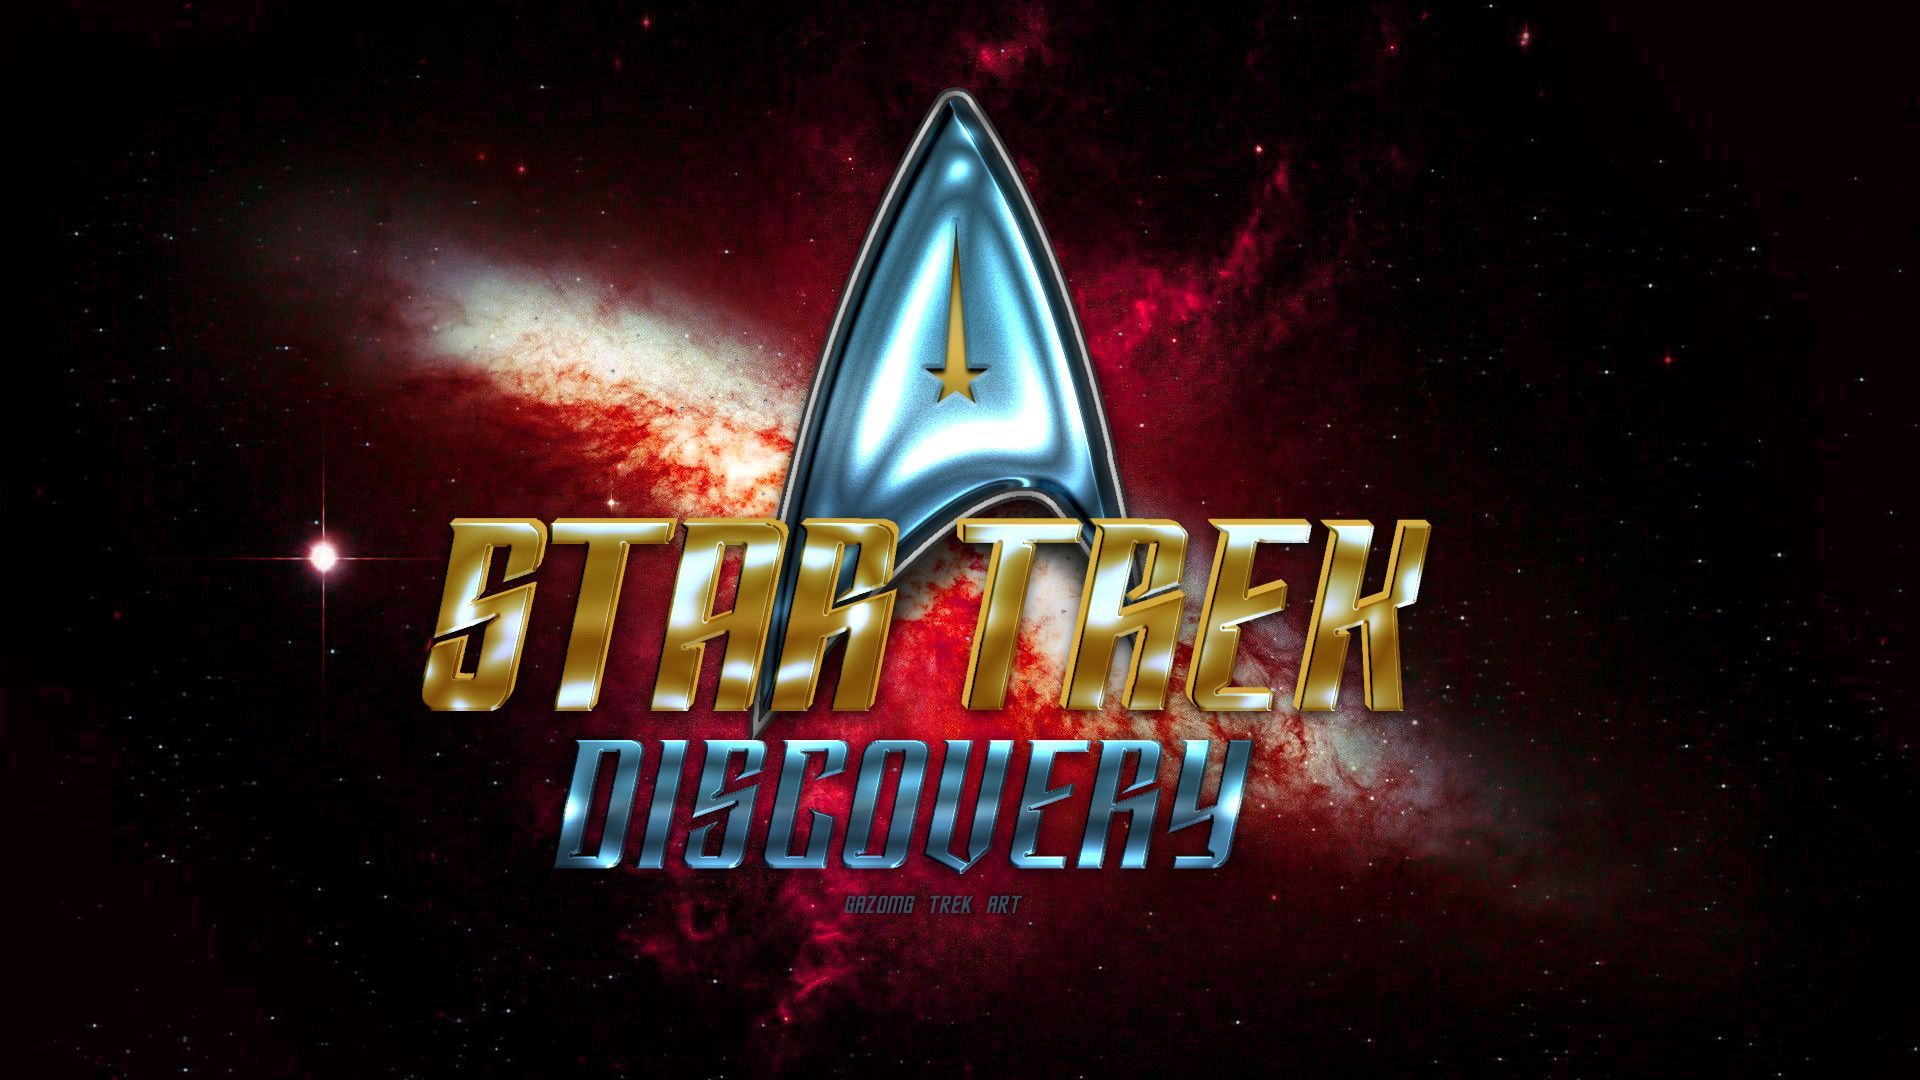 Star Trek Discovery Wallpapers Wallpaper Cave Star Trek